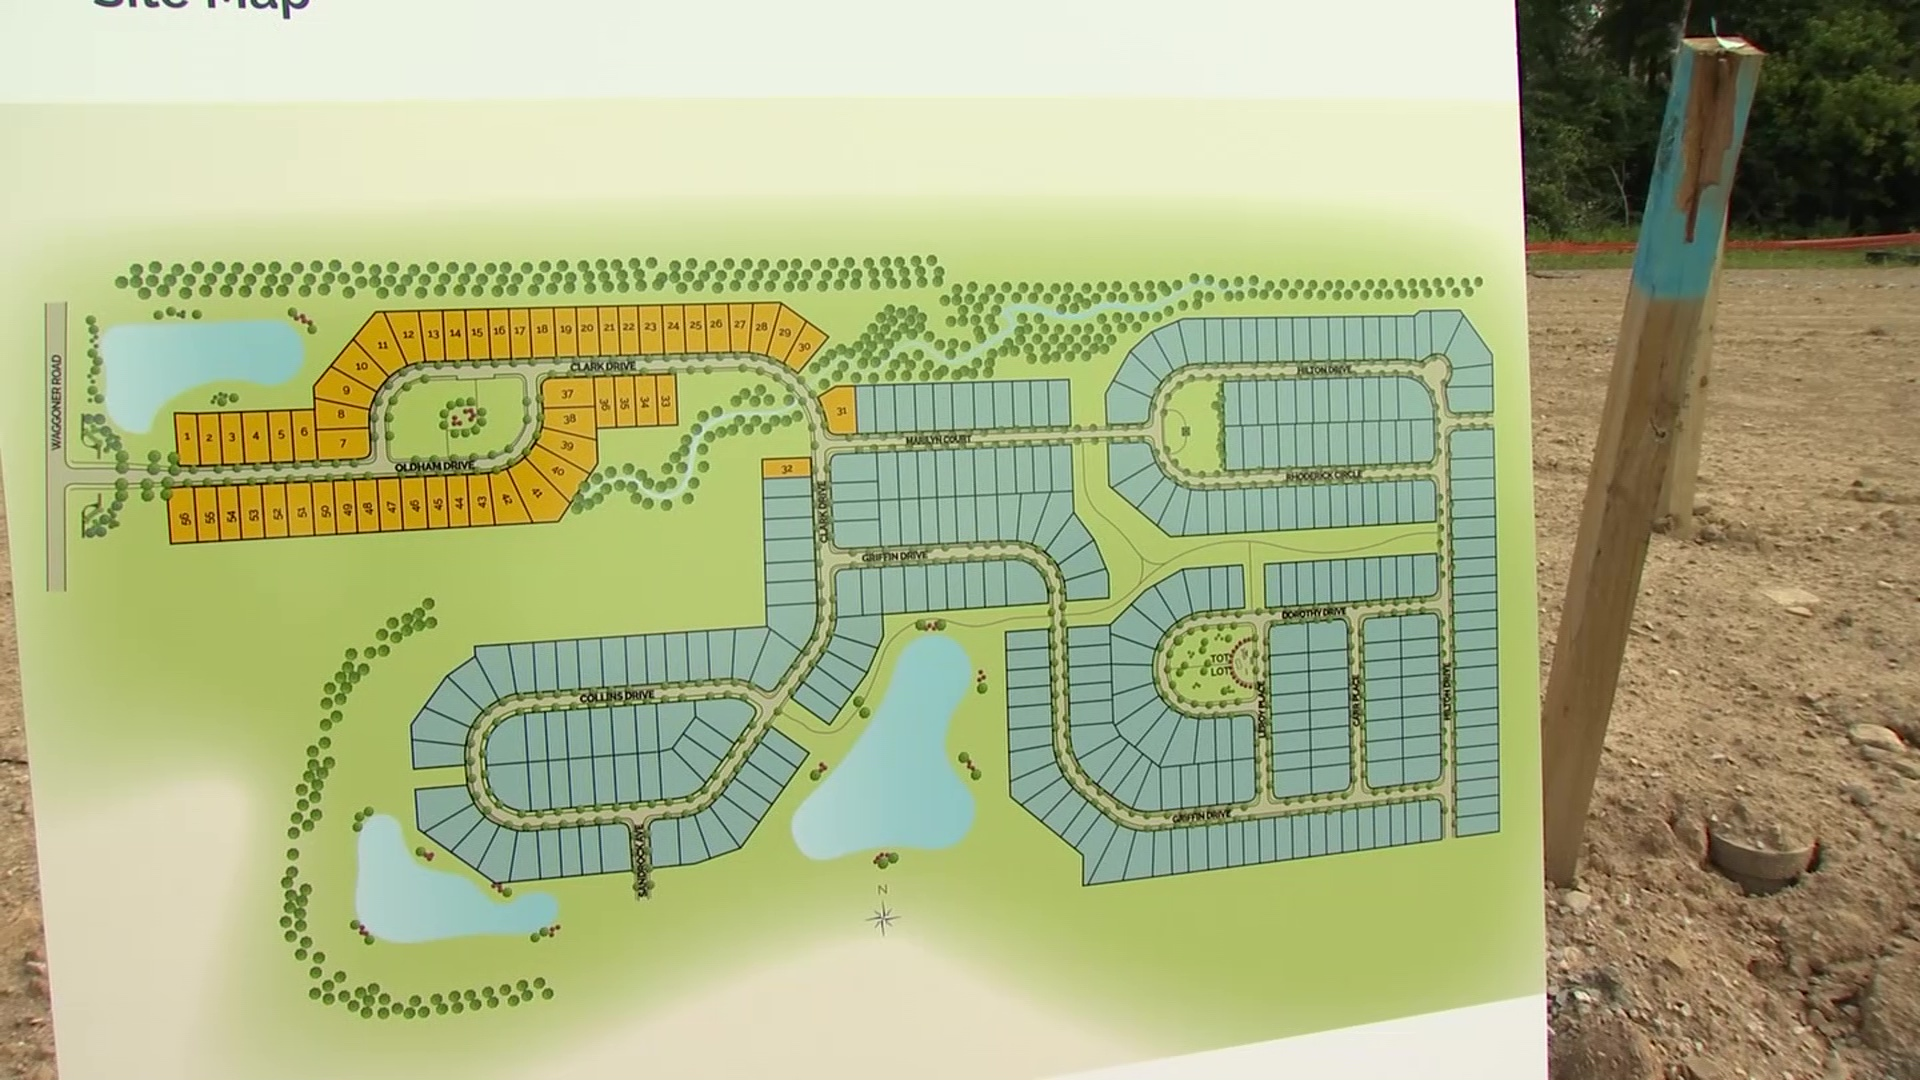 A site plan for a new development planned in central Ohio.